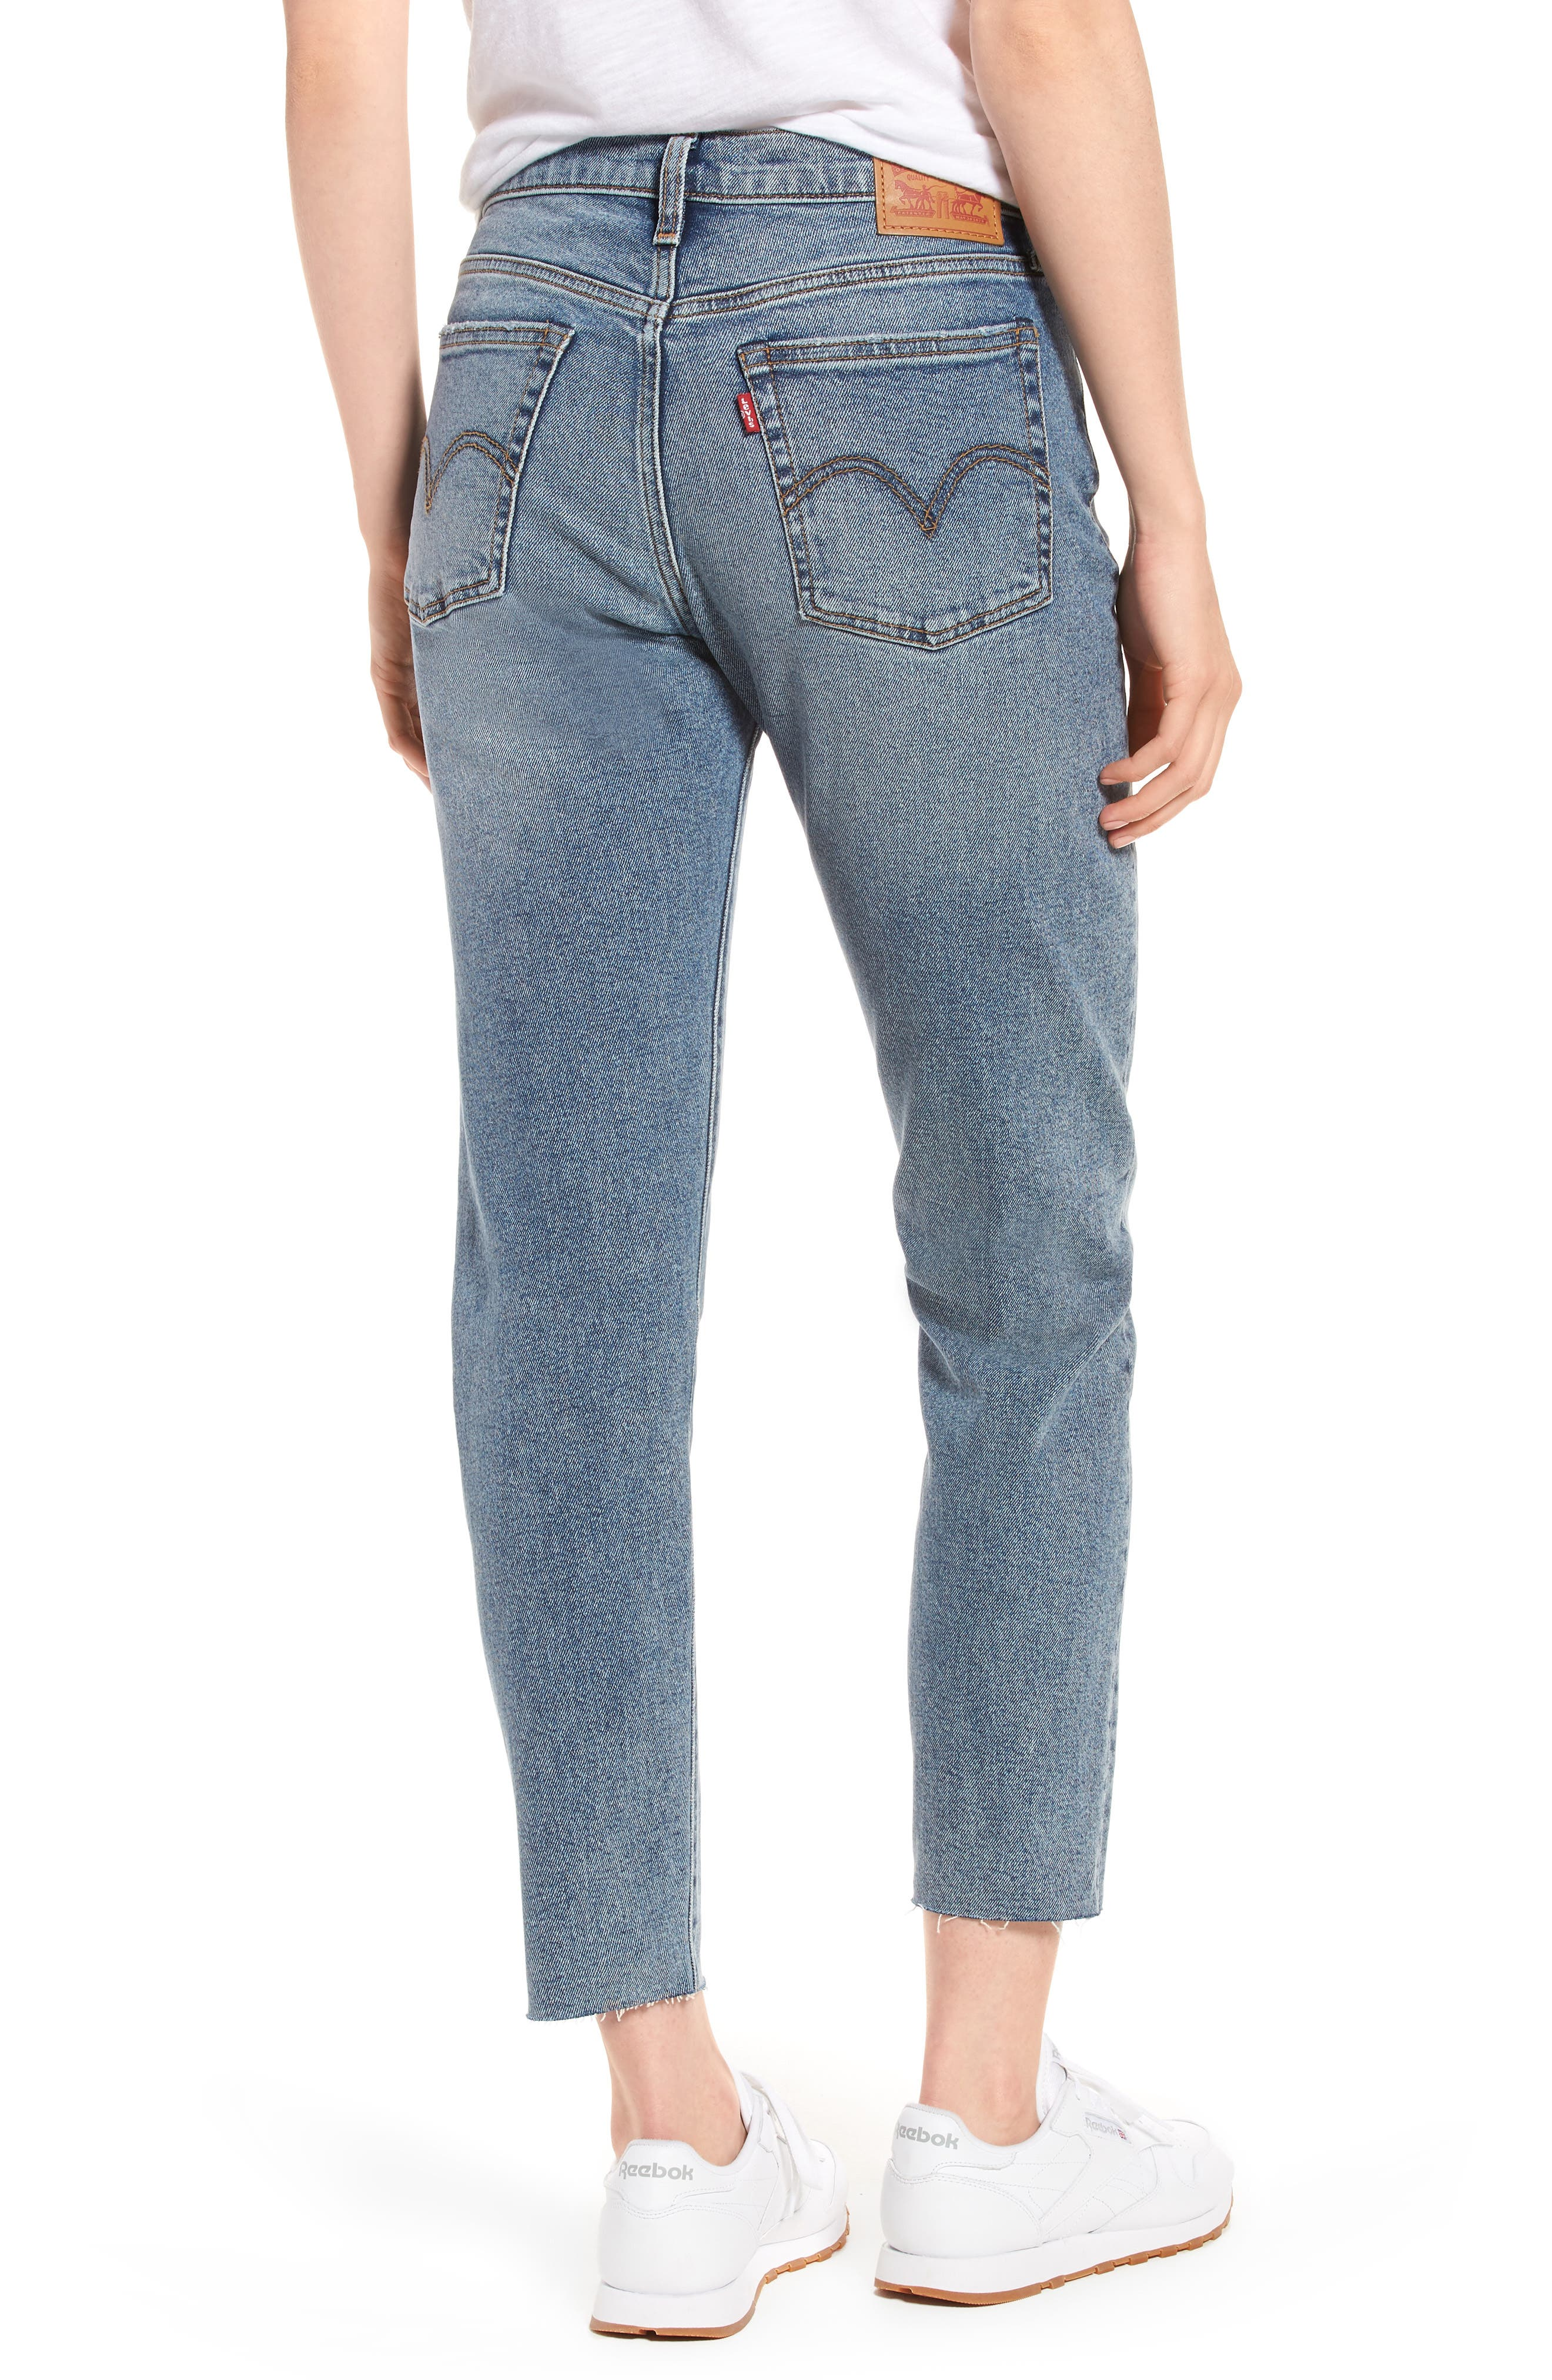 Wedgie Icon Fit High Waist Crop Jeans,                             Alternate thumbnail 2, color,                             Twisted Fate